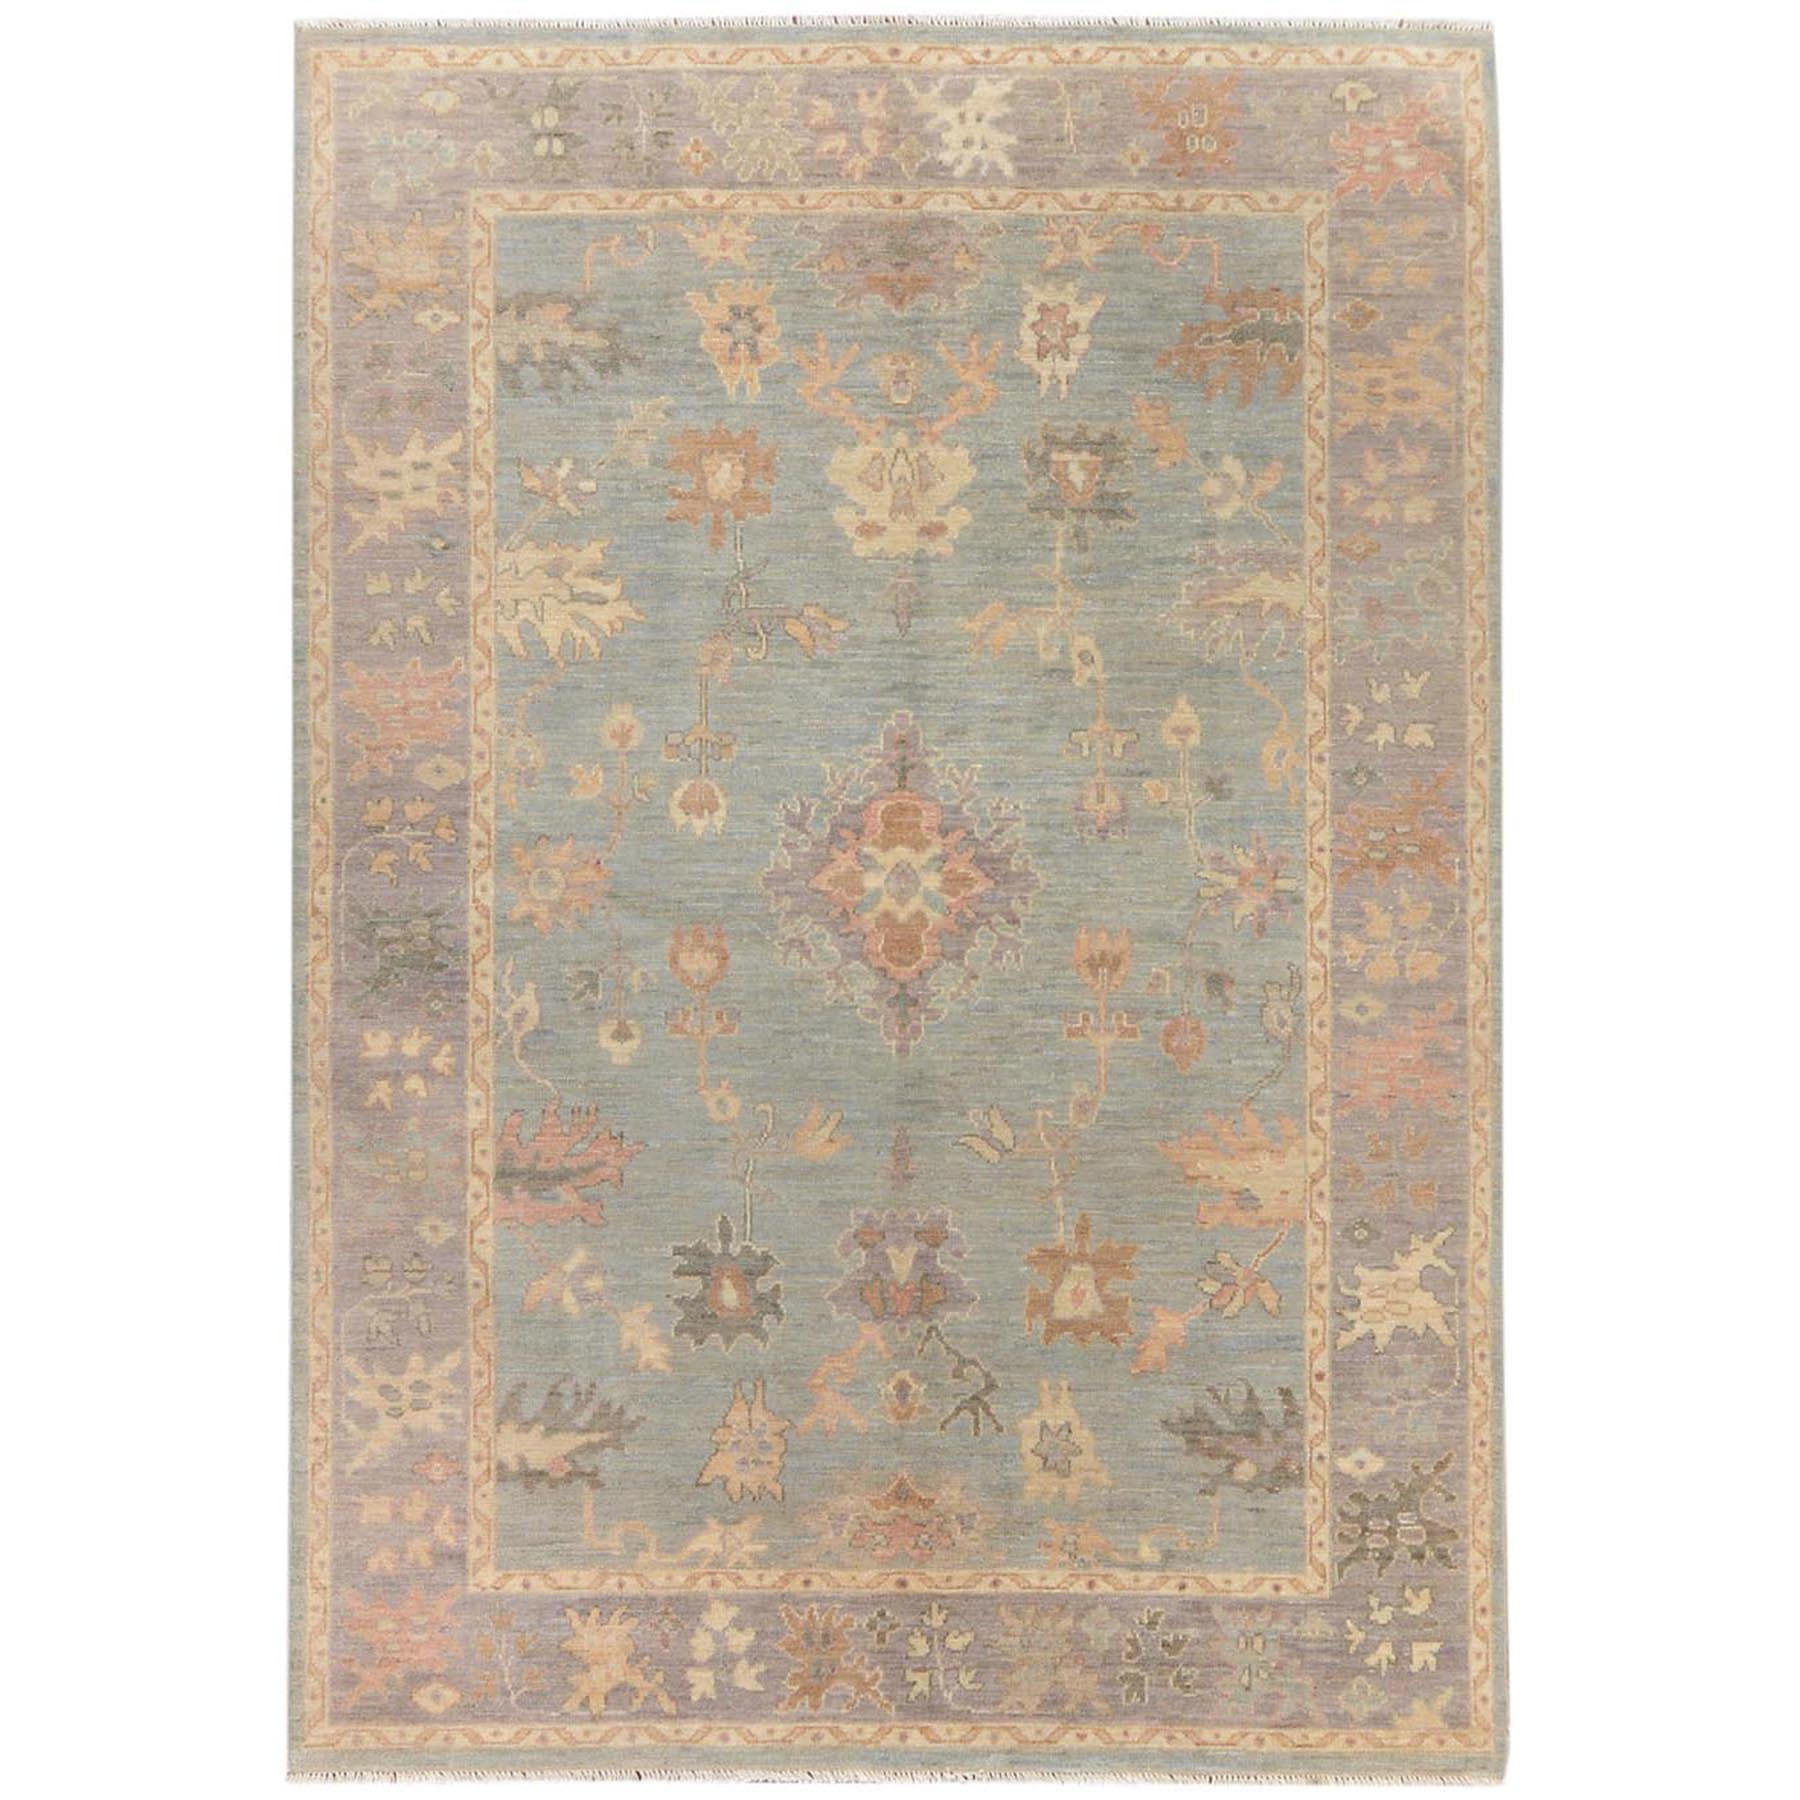 "6'x8'9"" Gray Angora Oushak With Soft Velvety Wool Hand Woven Oriental Rug"